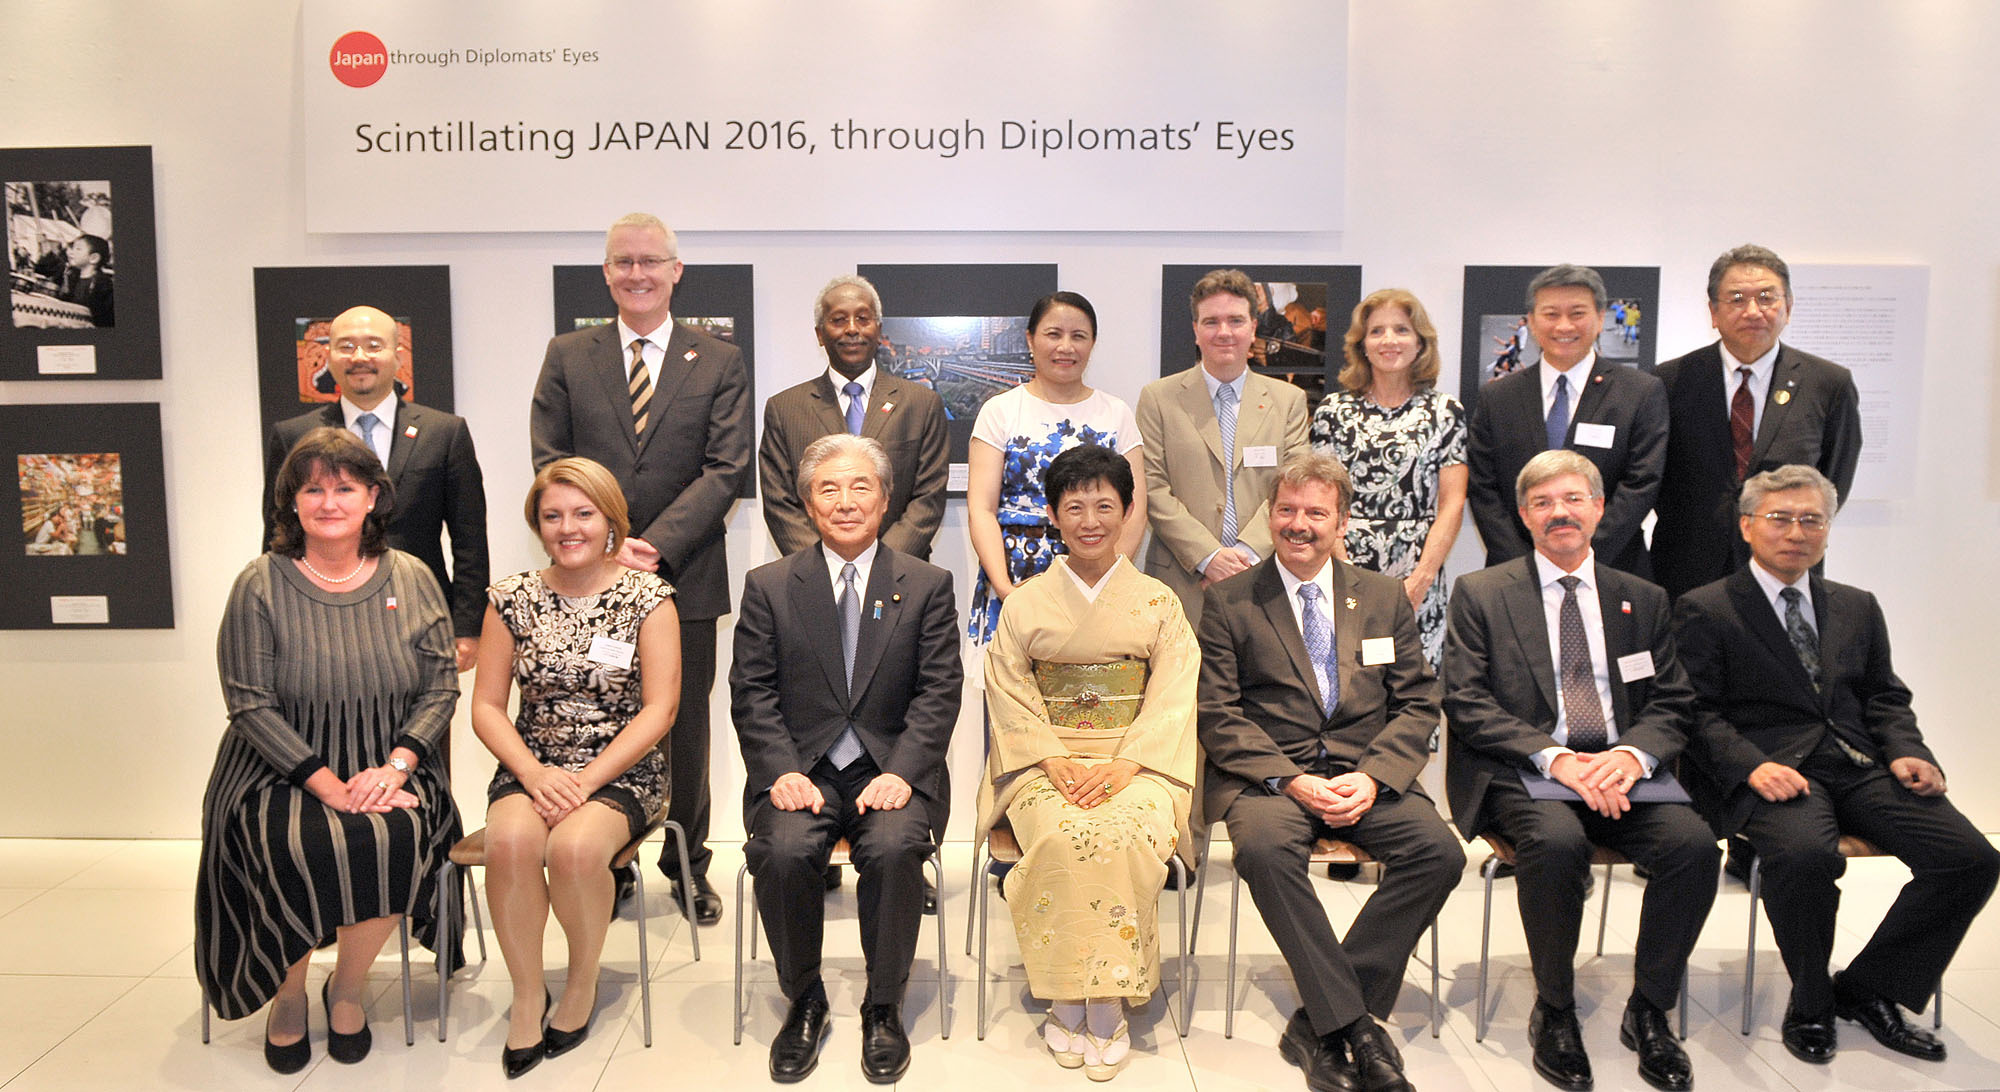 Exhibition participants and organizers (front row, from left) Chairperson of the Executive Committee, Luxembourg's Ambassador Beatrice Kirsch; Macedonia's Ambassador Andrijana Cvetkovikj; Head of the Jury Hirofumi Nakasone; Honorary President Princess Takamado; Pierre Worlf, spouse of Guatemala's ambassador; Germany's Ambasador, and Ambassador's Prize winner, Hans Carl von Werthern; and Chief of Protocol, Ministry of Foreign Affairs Kaoru Shimazaki are joined by jury special mention winners and committee members at Roppongi Hills on Oct. 4. | YOSHIAKI MIURA